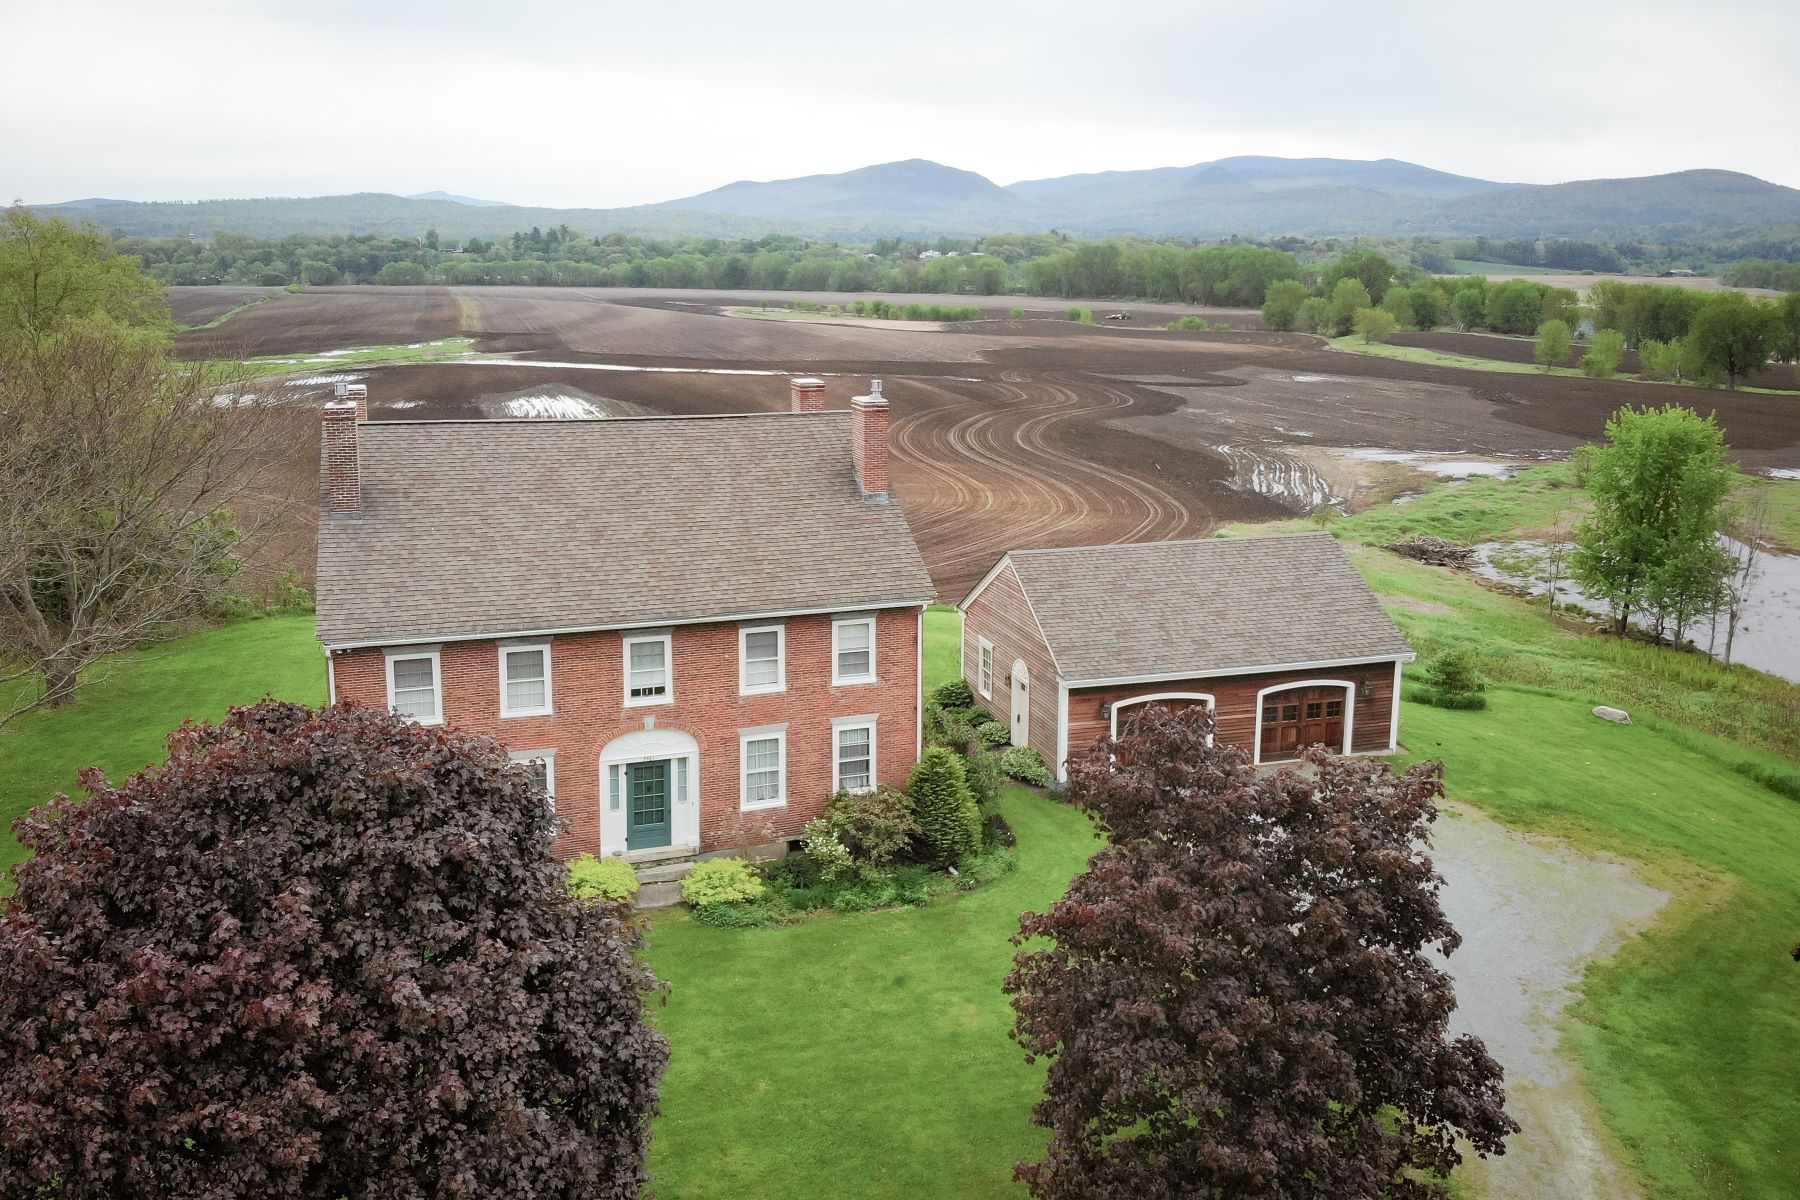 single family homes for Sale at Four Bedroom Colonial in Newbury 3961 Route 5 N Newbury, Vermont 05051 United States